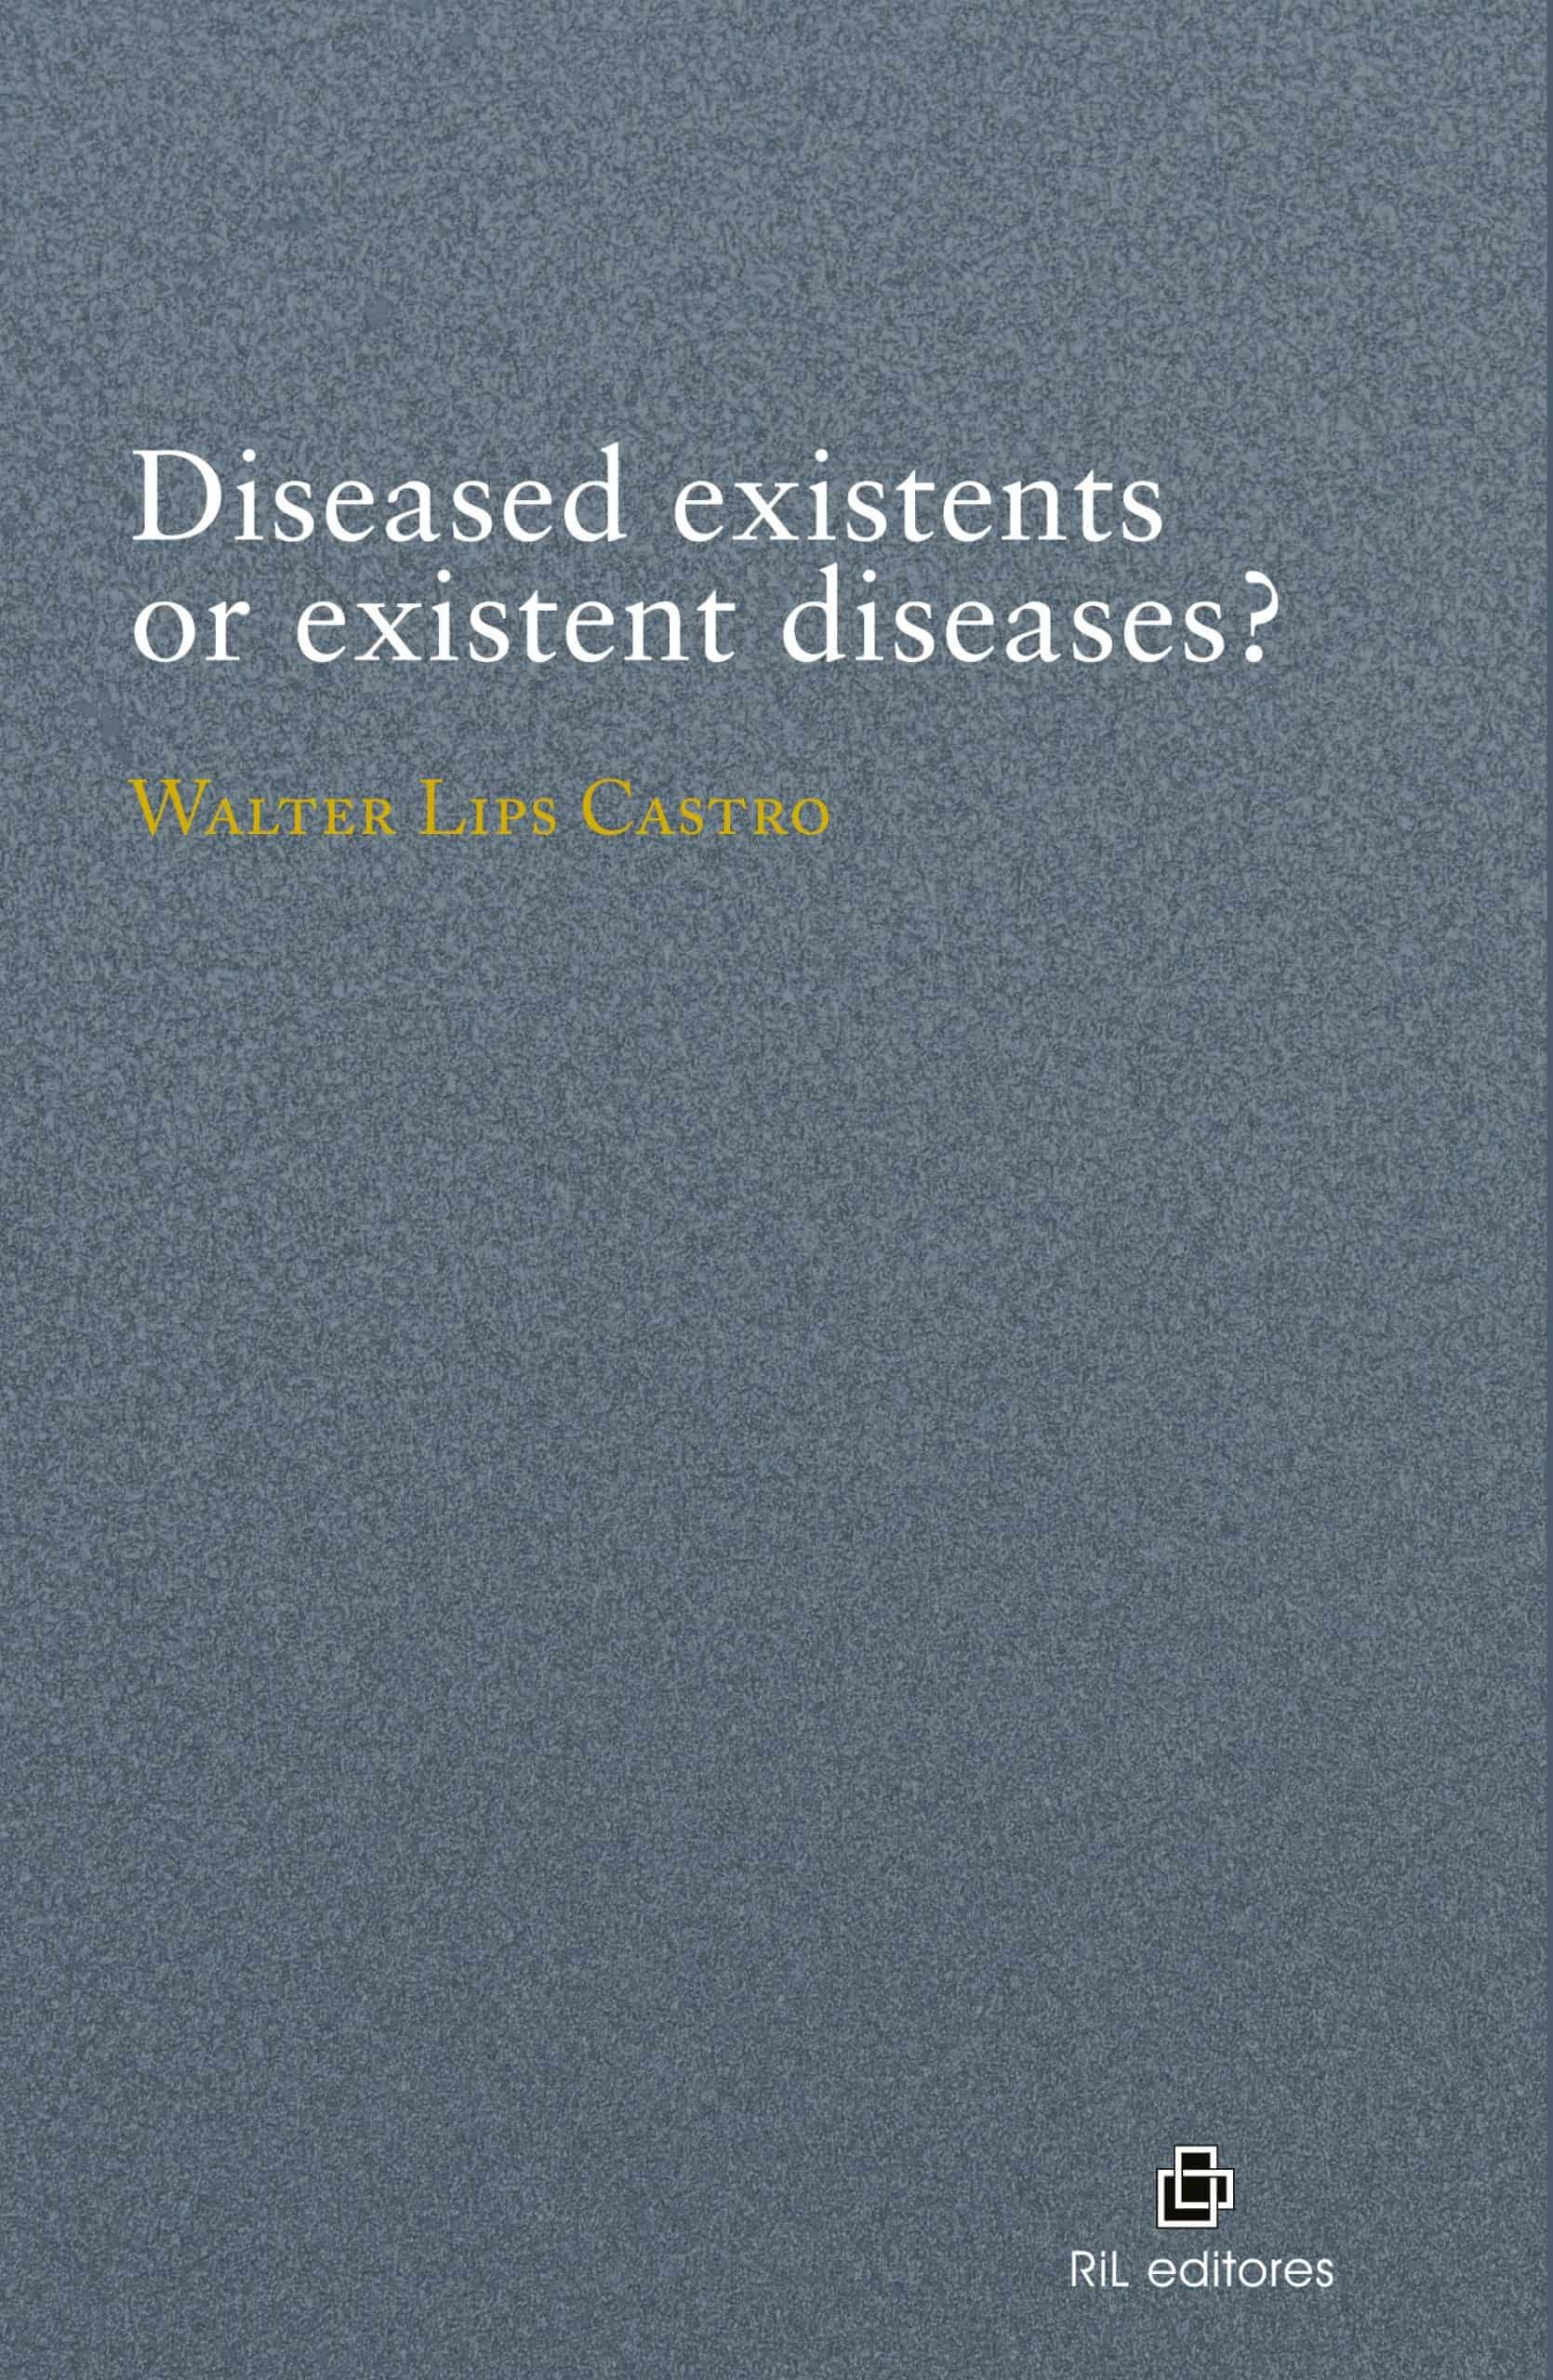 Diseased existents or existent diseases? 1